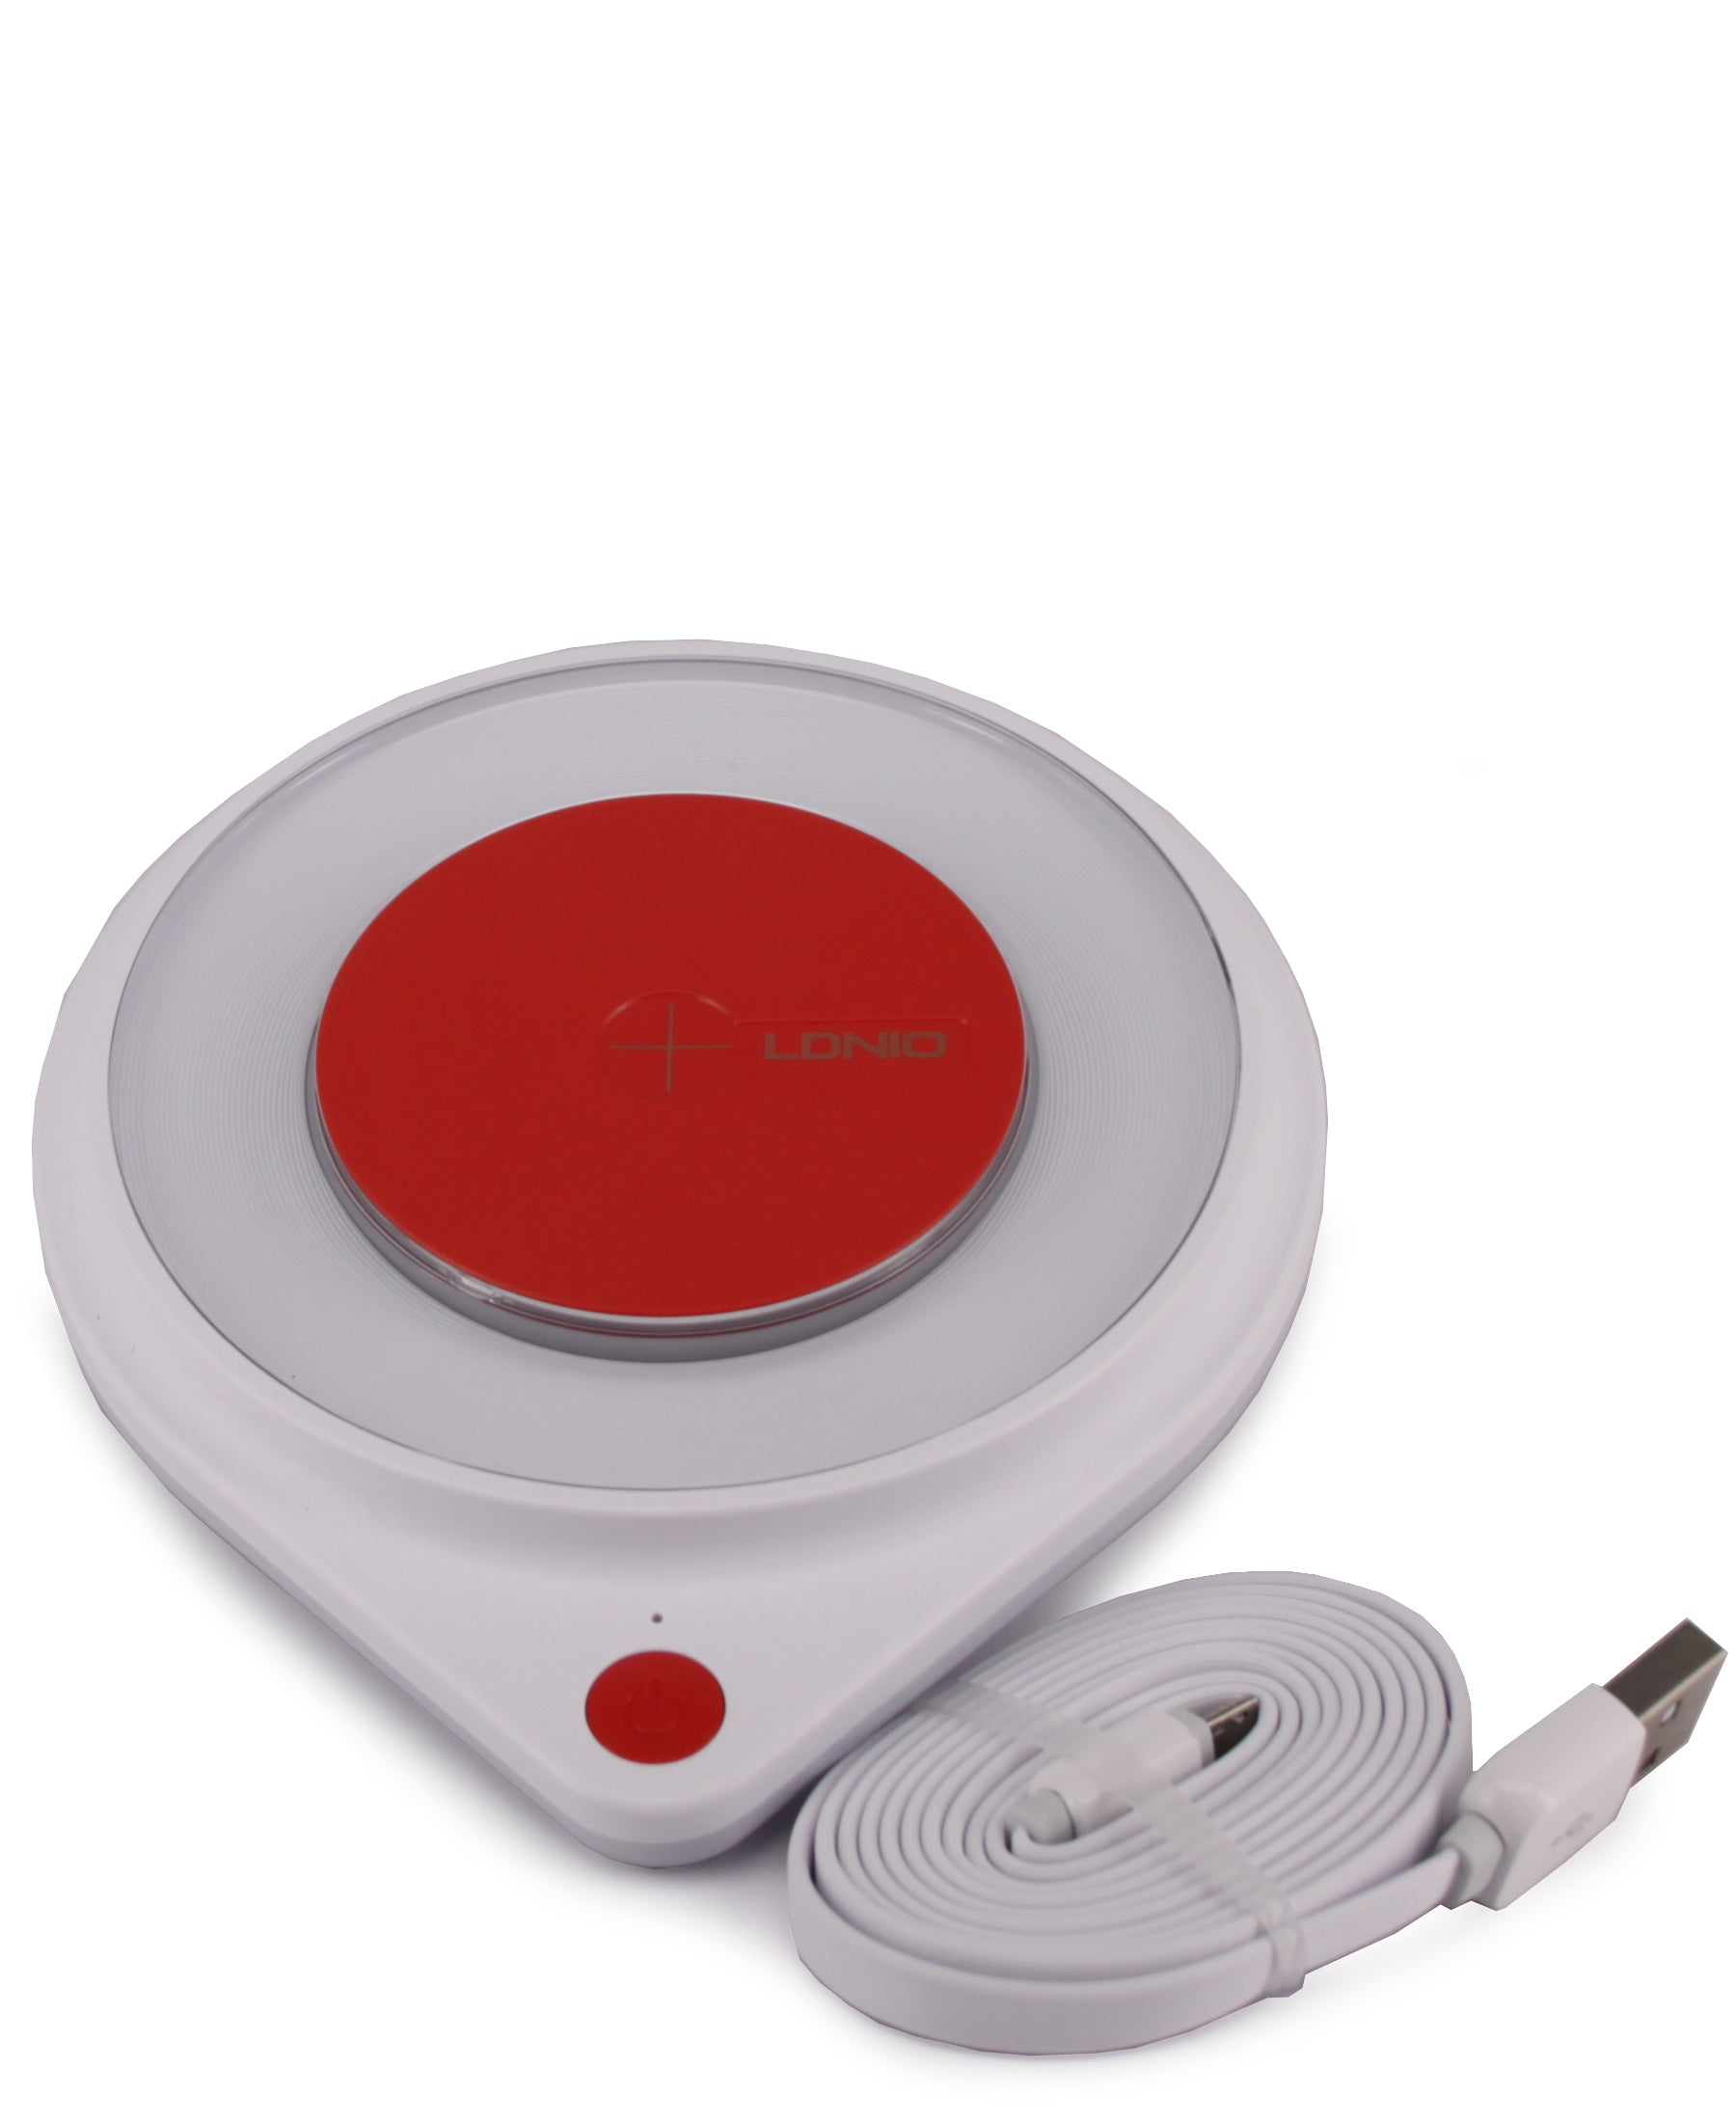 Wireless Charging Pad - Red